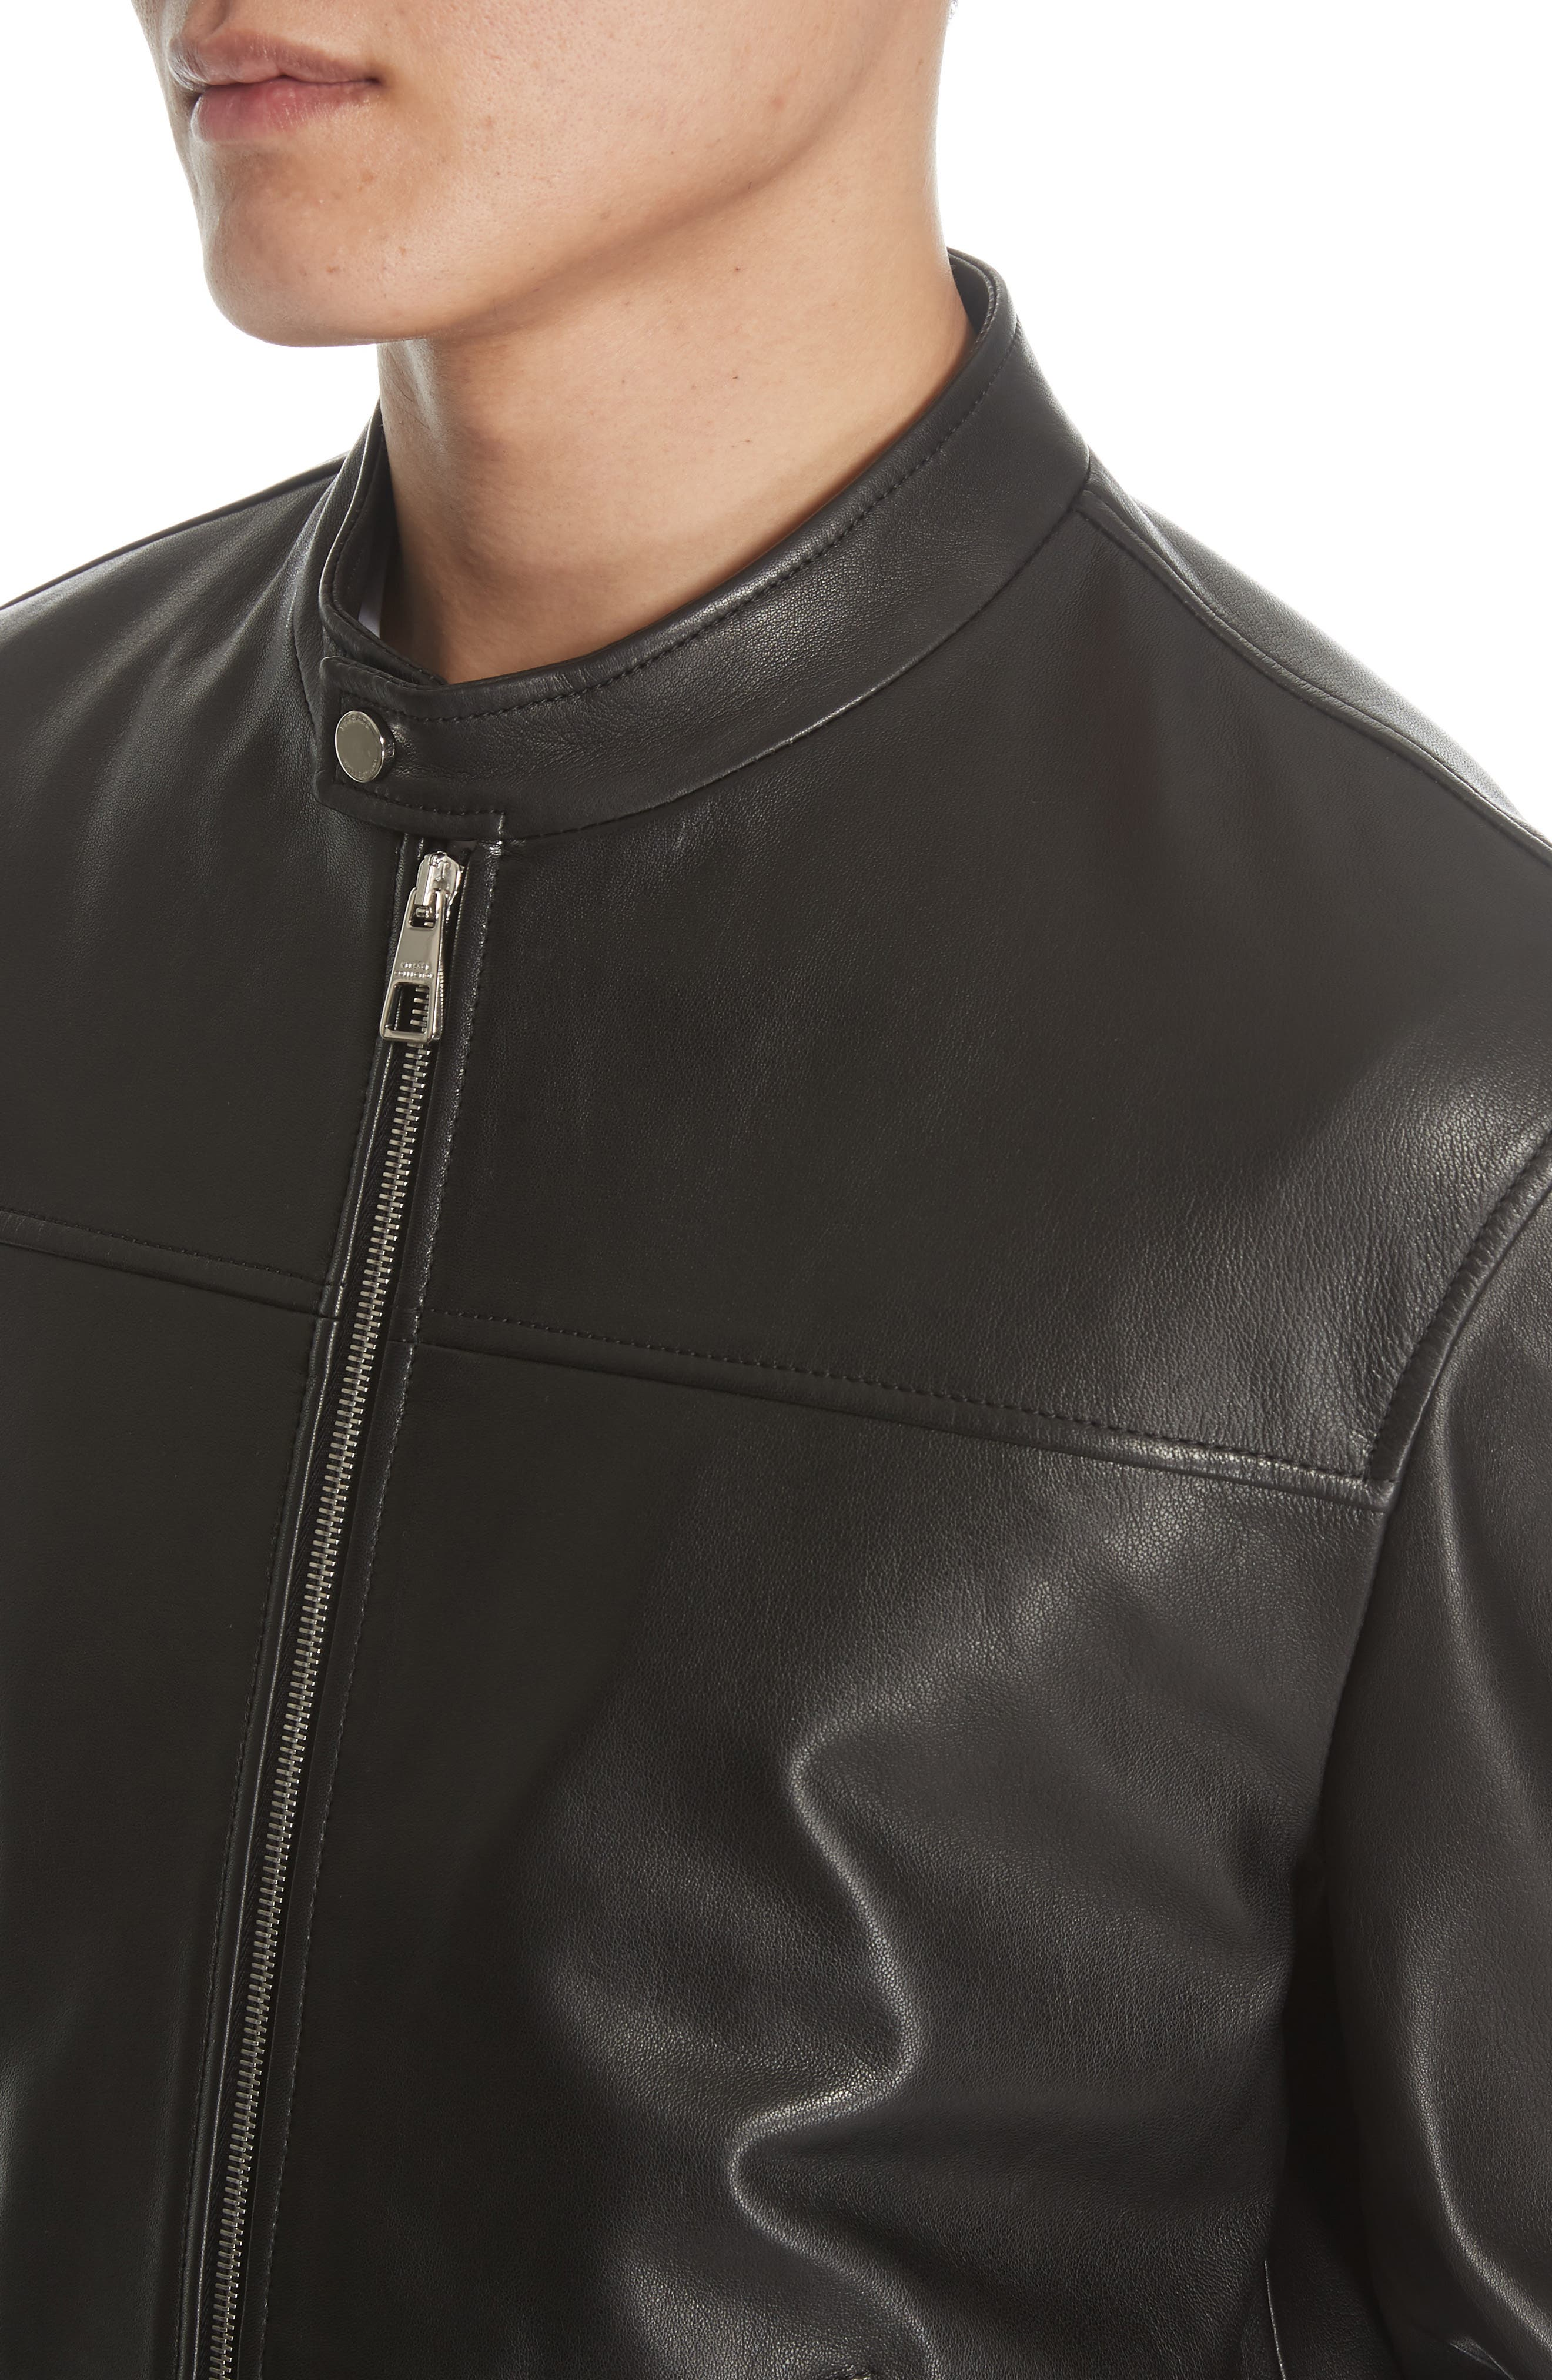 VERSACE COLLECTION, Lambskin Leather Jacket, Alternate thumbnail 4, color, 001